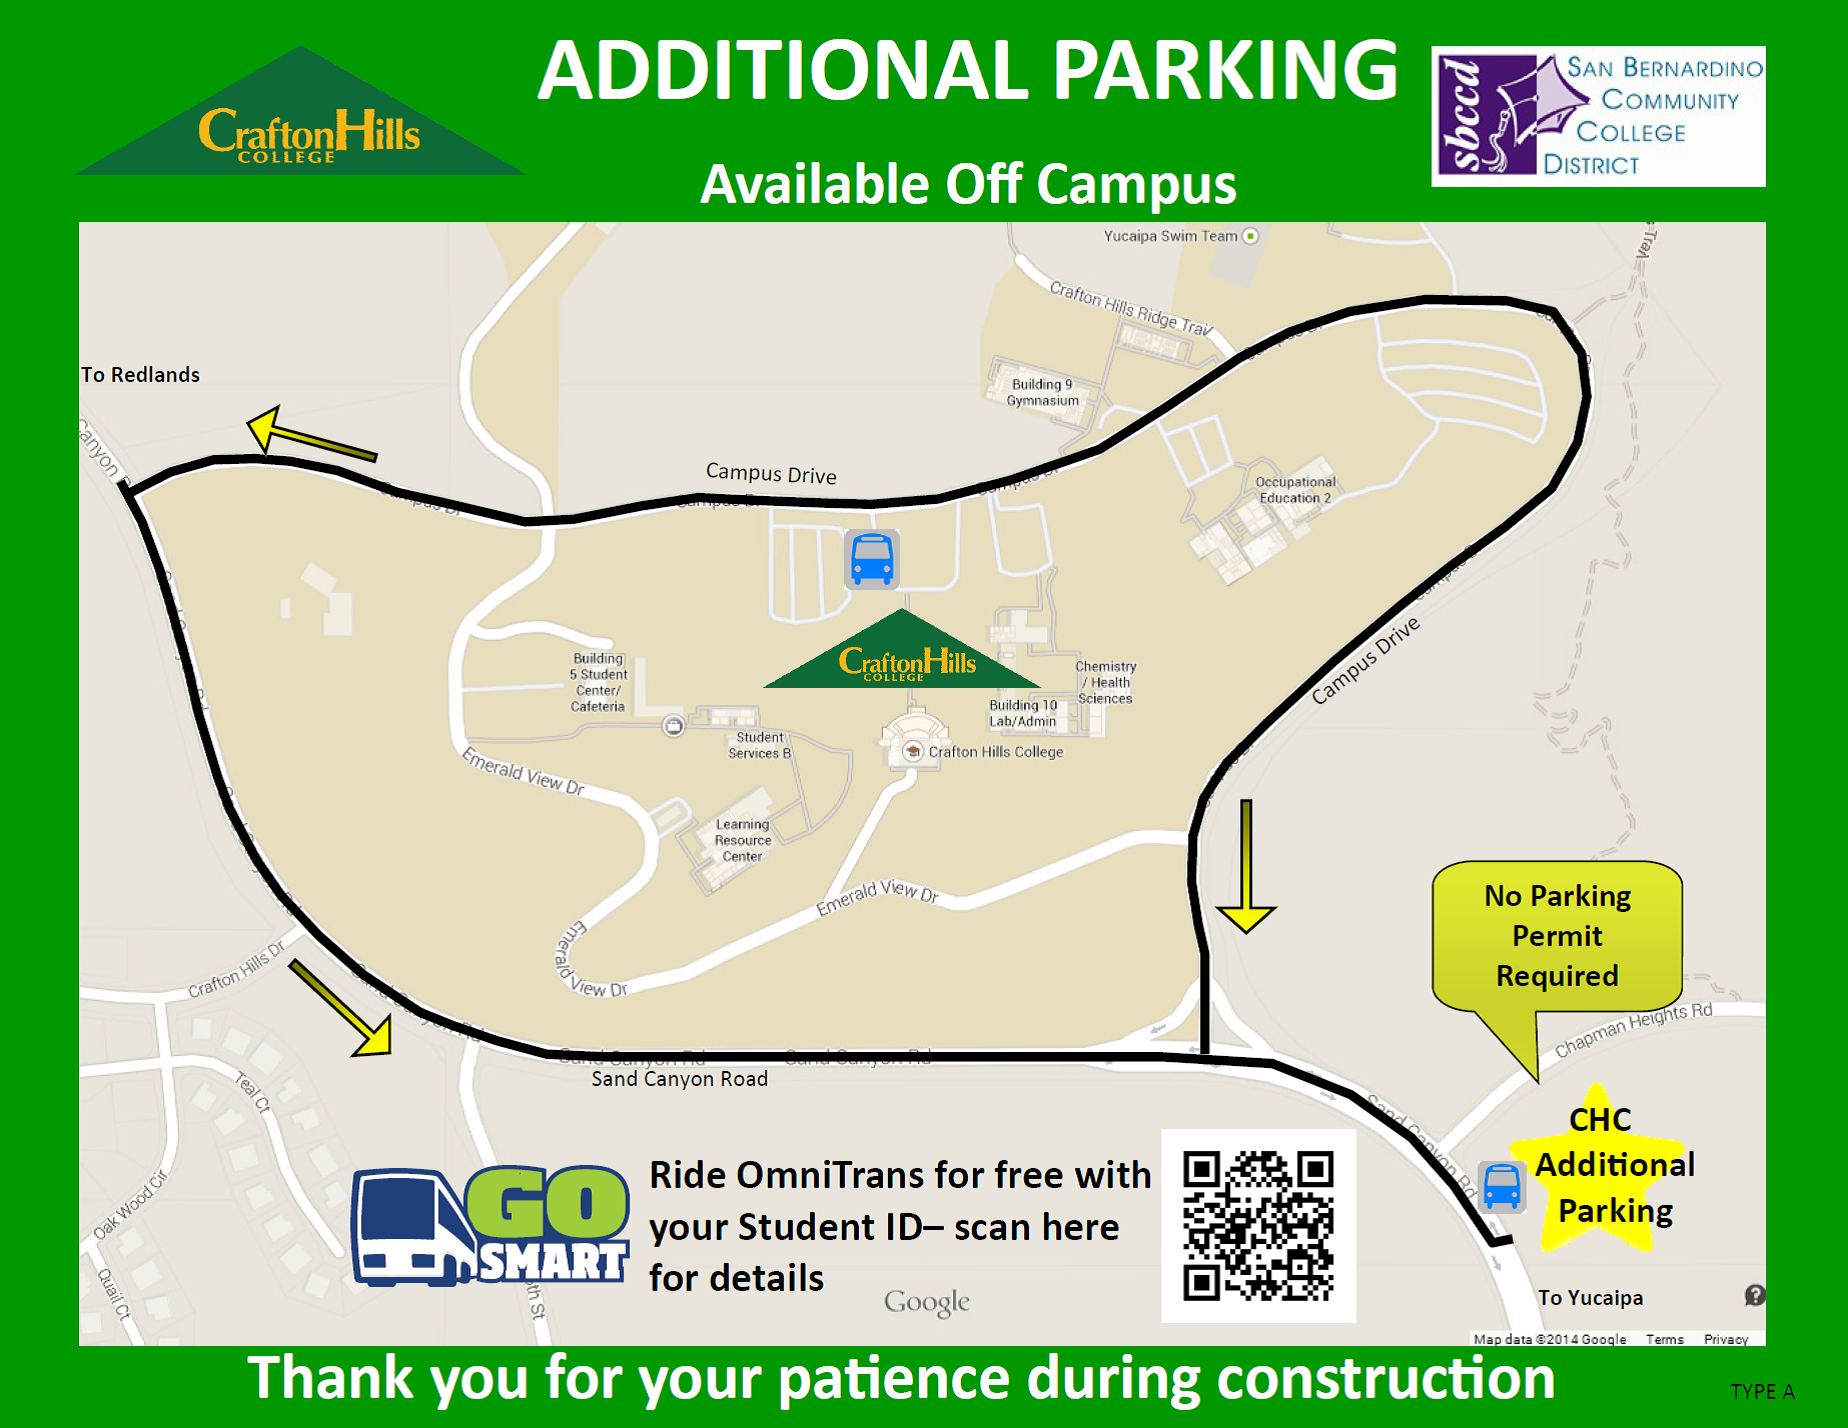 Additional Parking available off-campus.  No Parking permit required.  Ride Omnitrans for free with your Student ID.